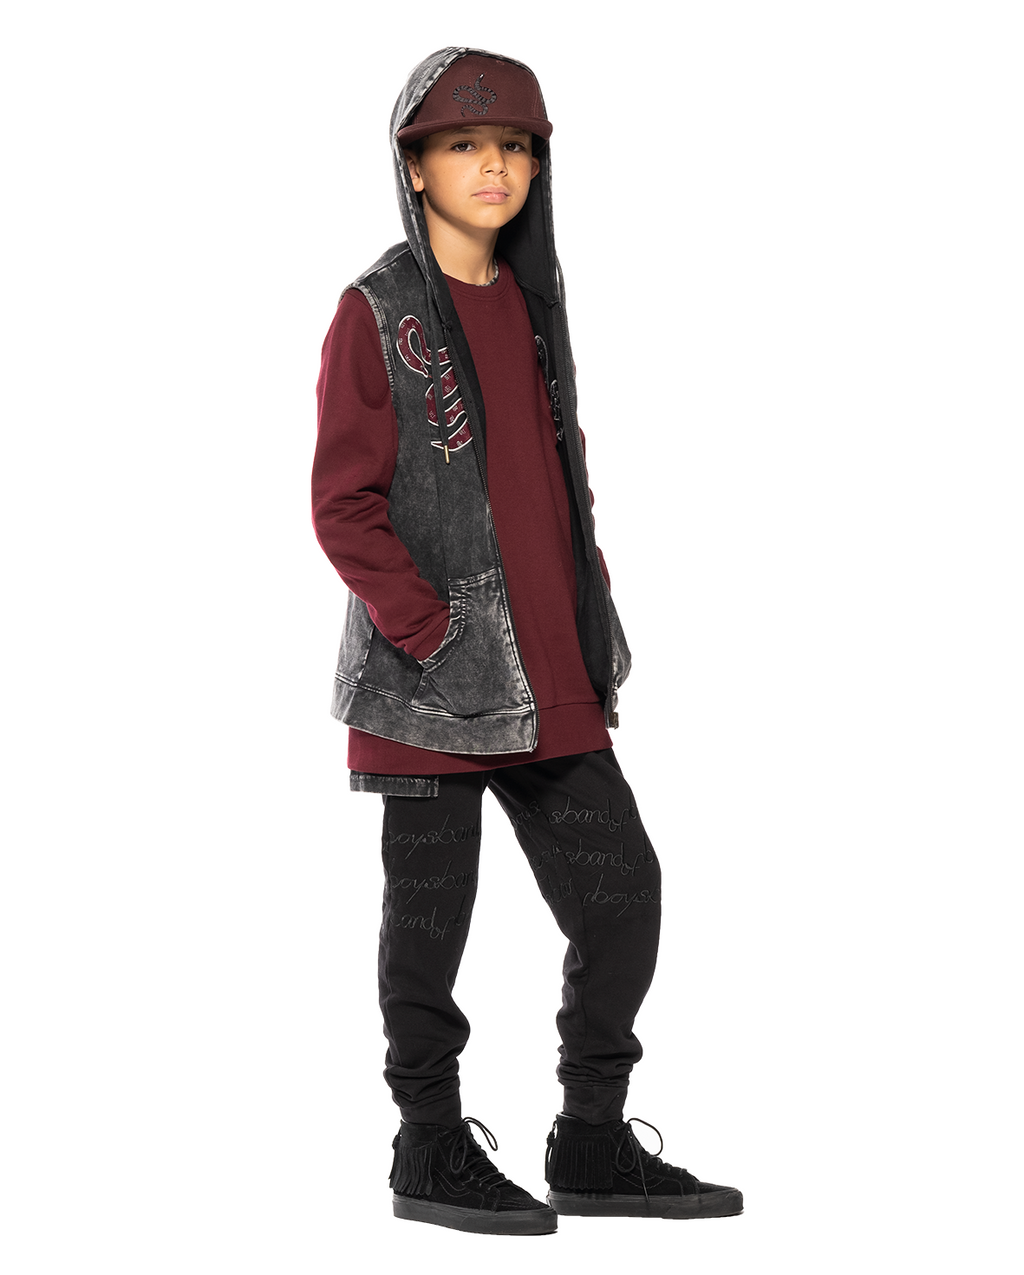 Band of Boys - Bandits - Red Snake Sleeveless Hood - Vintage Black